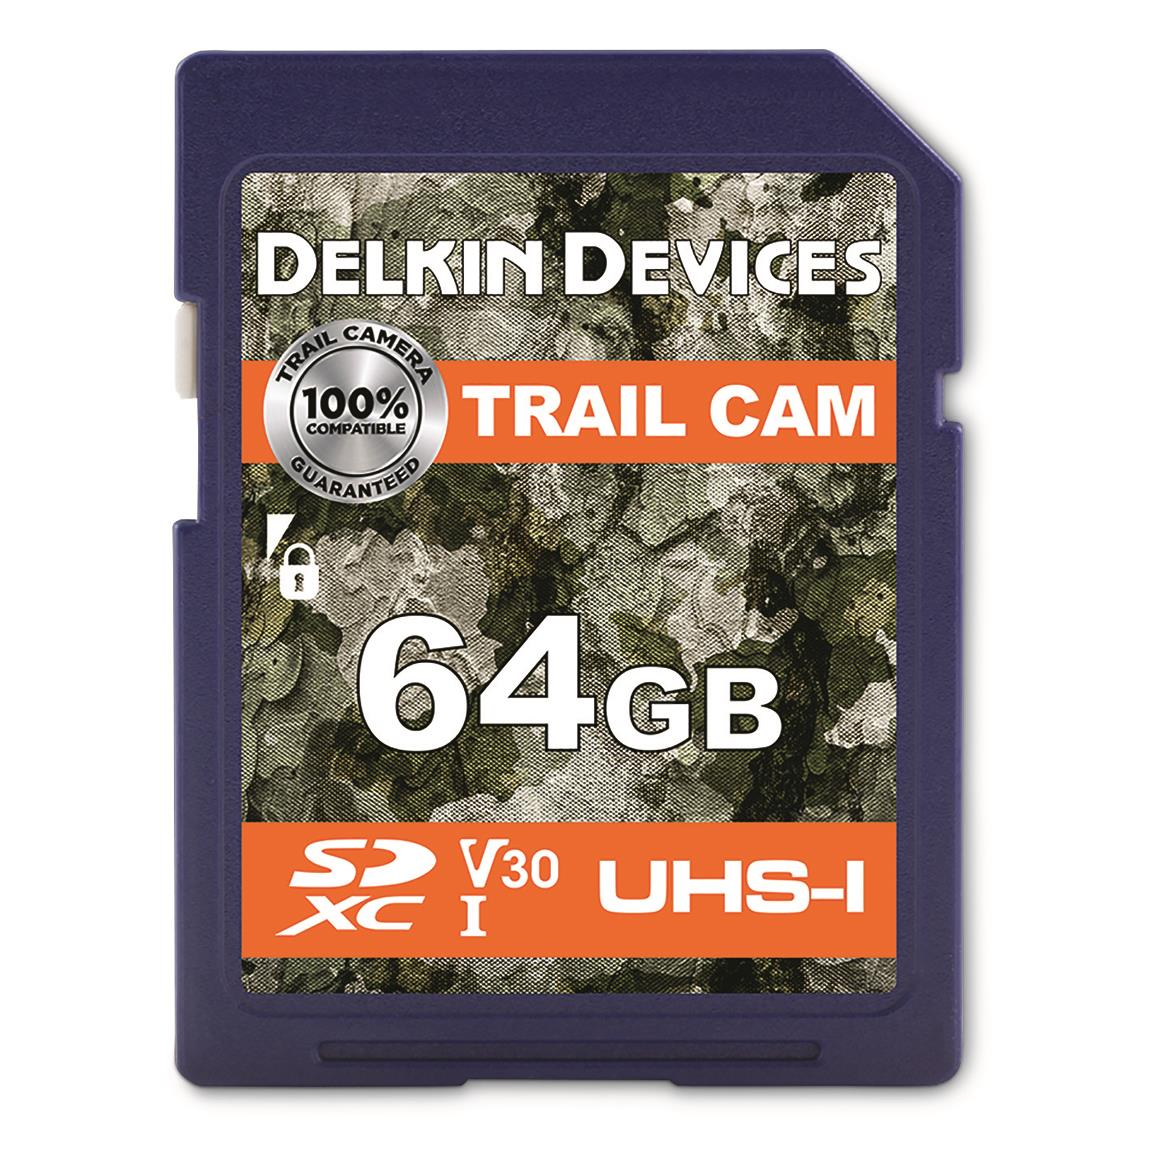 Delkin Devices 64GB SD Memory Card